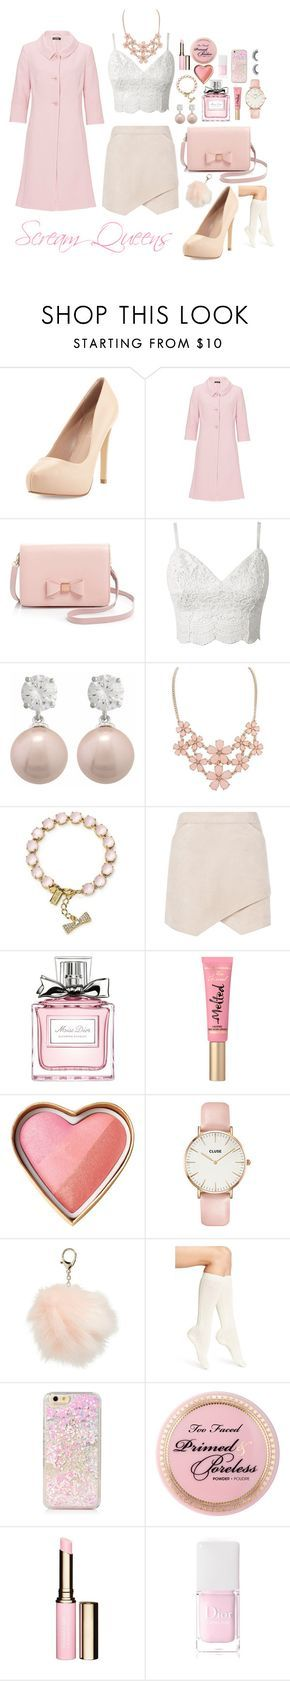 """If I Were in Scream Queens"" by secretglamqueen on Polyvore featuring Charles by Charles David, Vera Mont, Ted Baker, Kate Spade, BCBGMAXAZRIA, Christian Dior, CLUSE, Nila Anthony, Calvin Klein and Clarins"